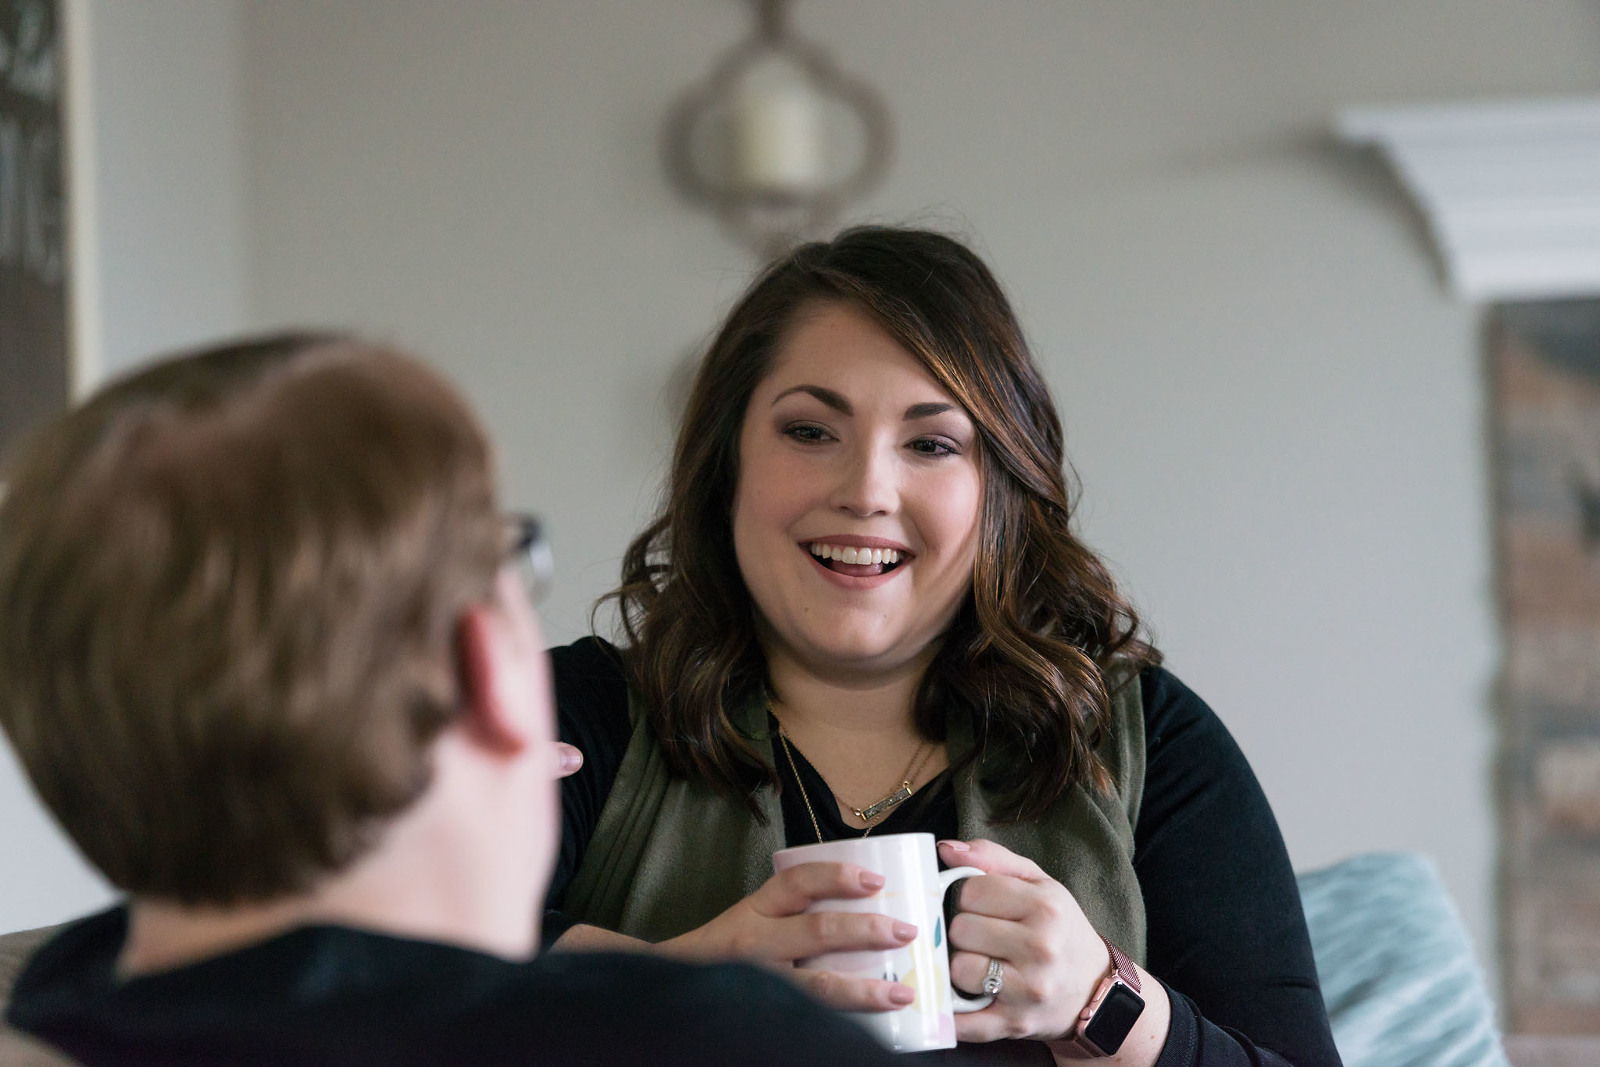 Brunette woman laughing and drinking coffee at home during personal branding session for city government campaign in Fort Wayne, Indiana